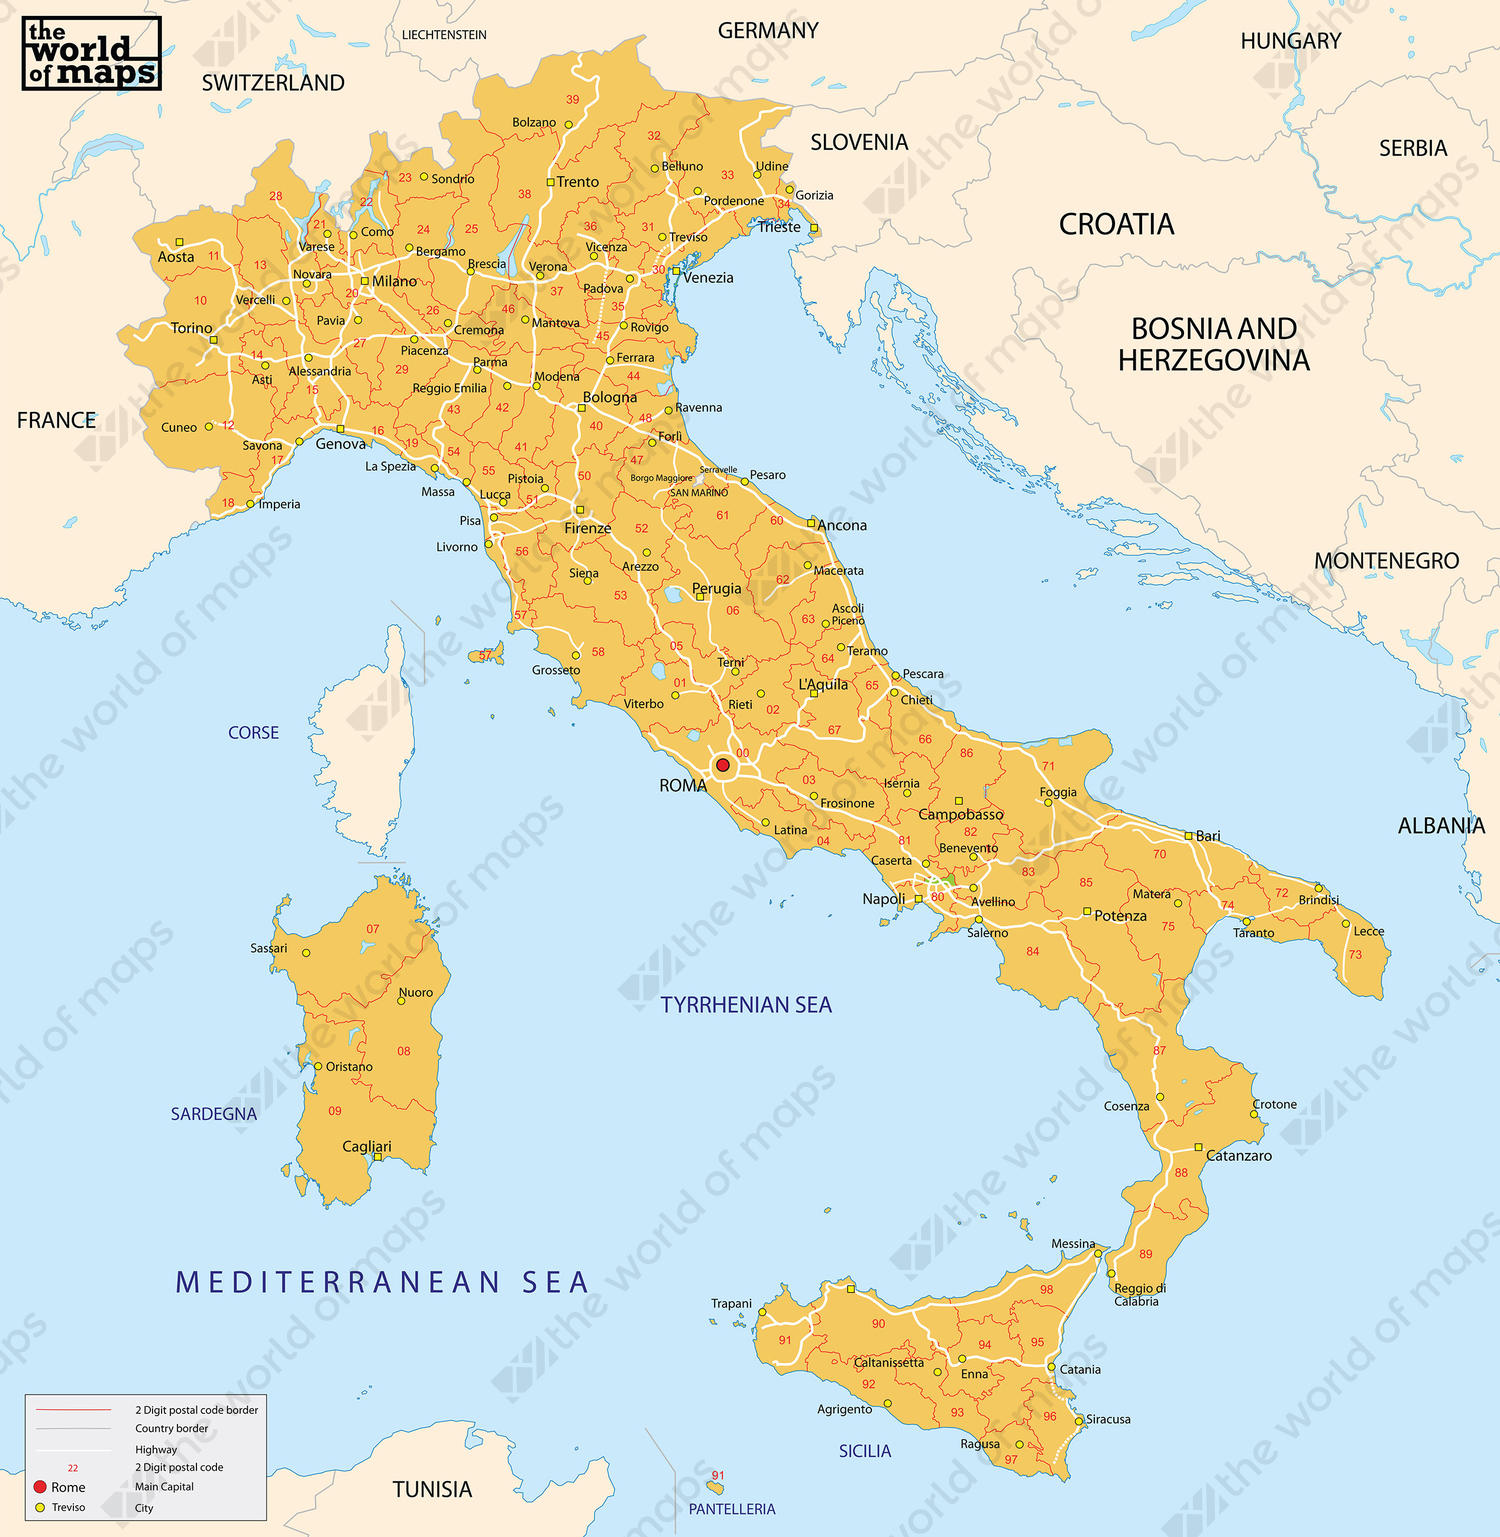 Capital Of Italy Map.Digital Postcode Map Italy 2 Digit 86 The World Of Maps Com